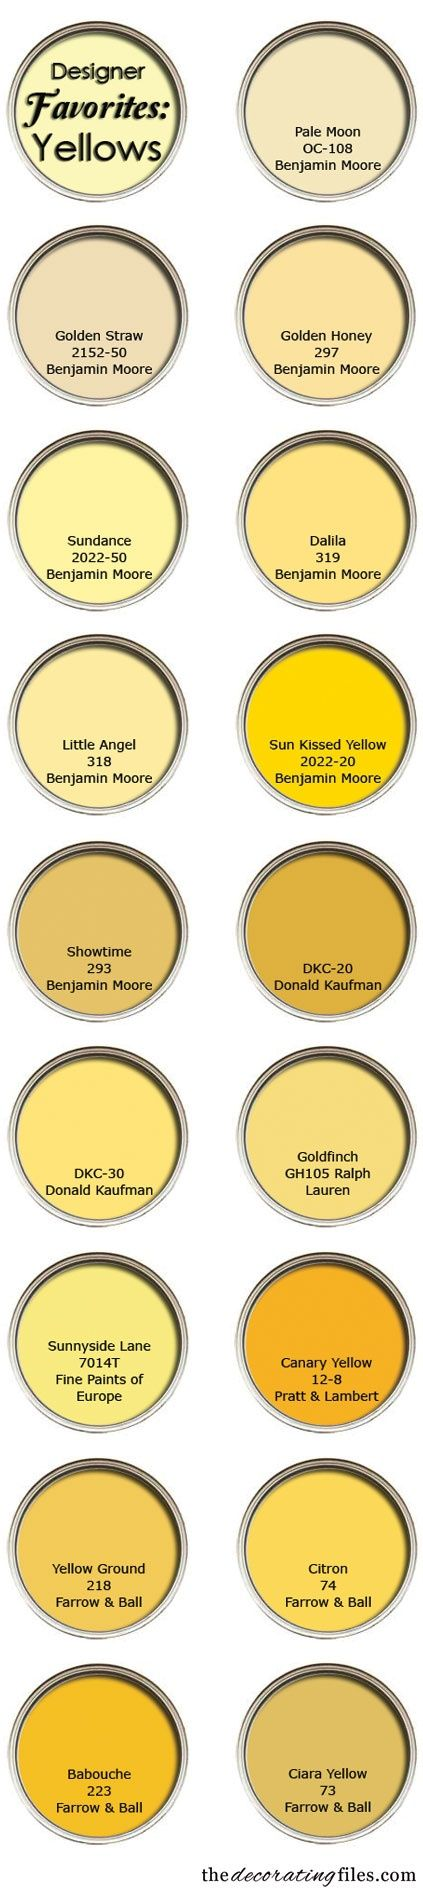 Yellow Paint Colors: I love yellow in the kitchen. I def. want a lighter mellow shade of yellow but I'd still take forever to decide which one I want.